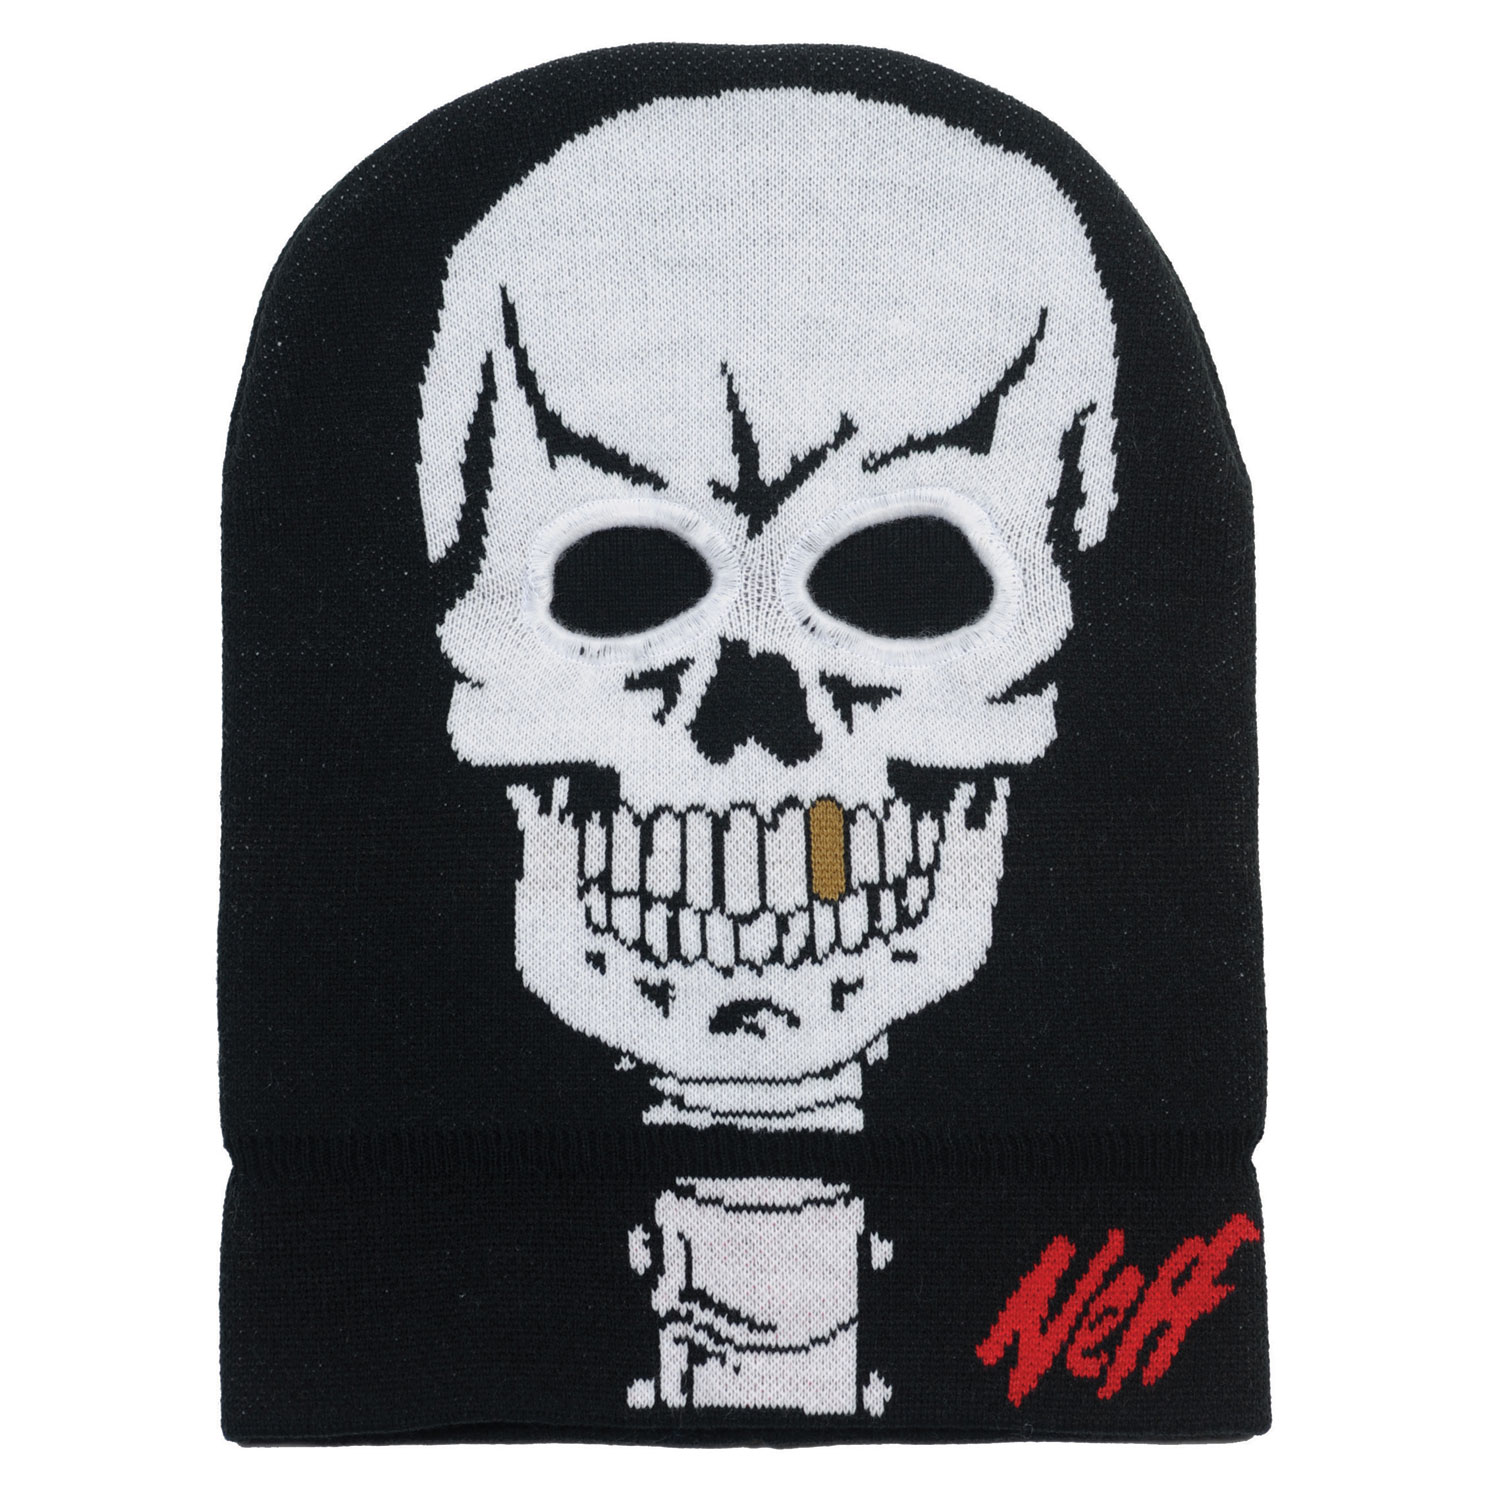 Ski Key Features of the Neff X-Ray Ski Mask: 100% Acrylic - $20.95